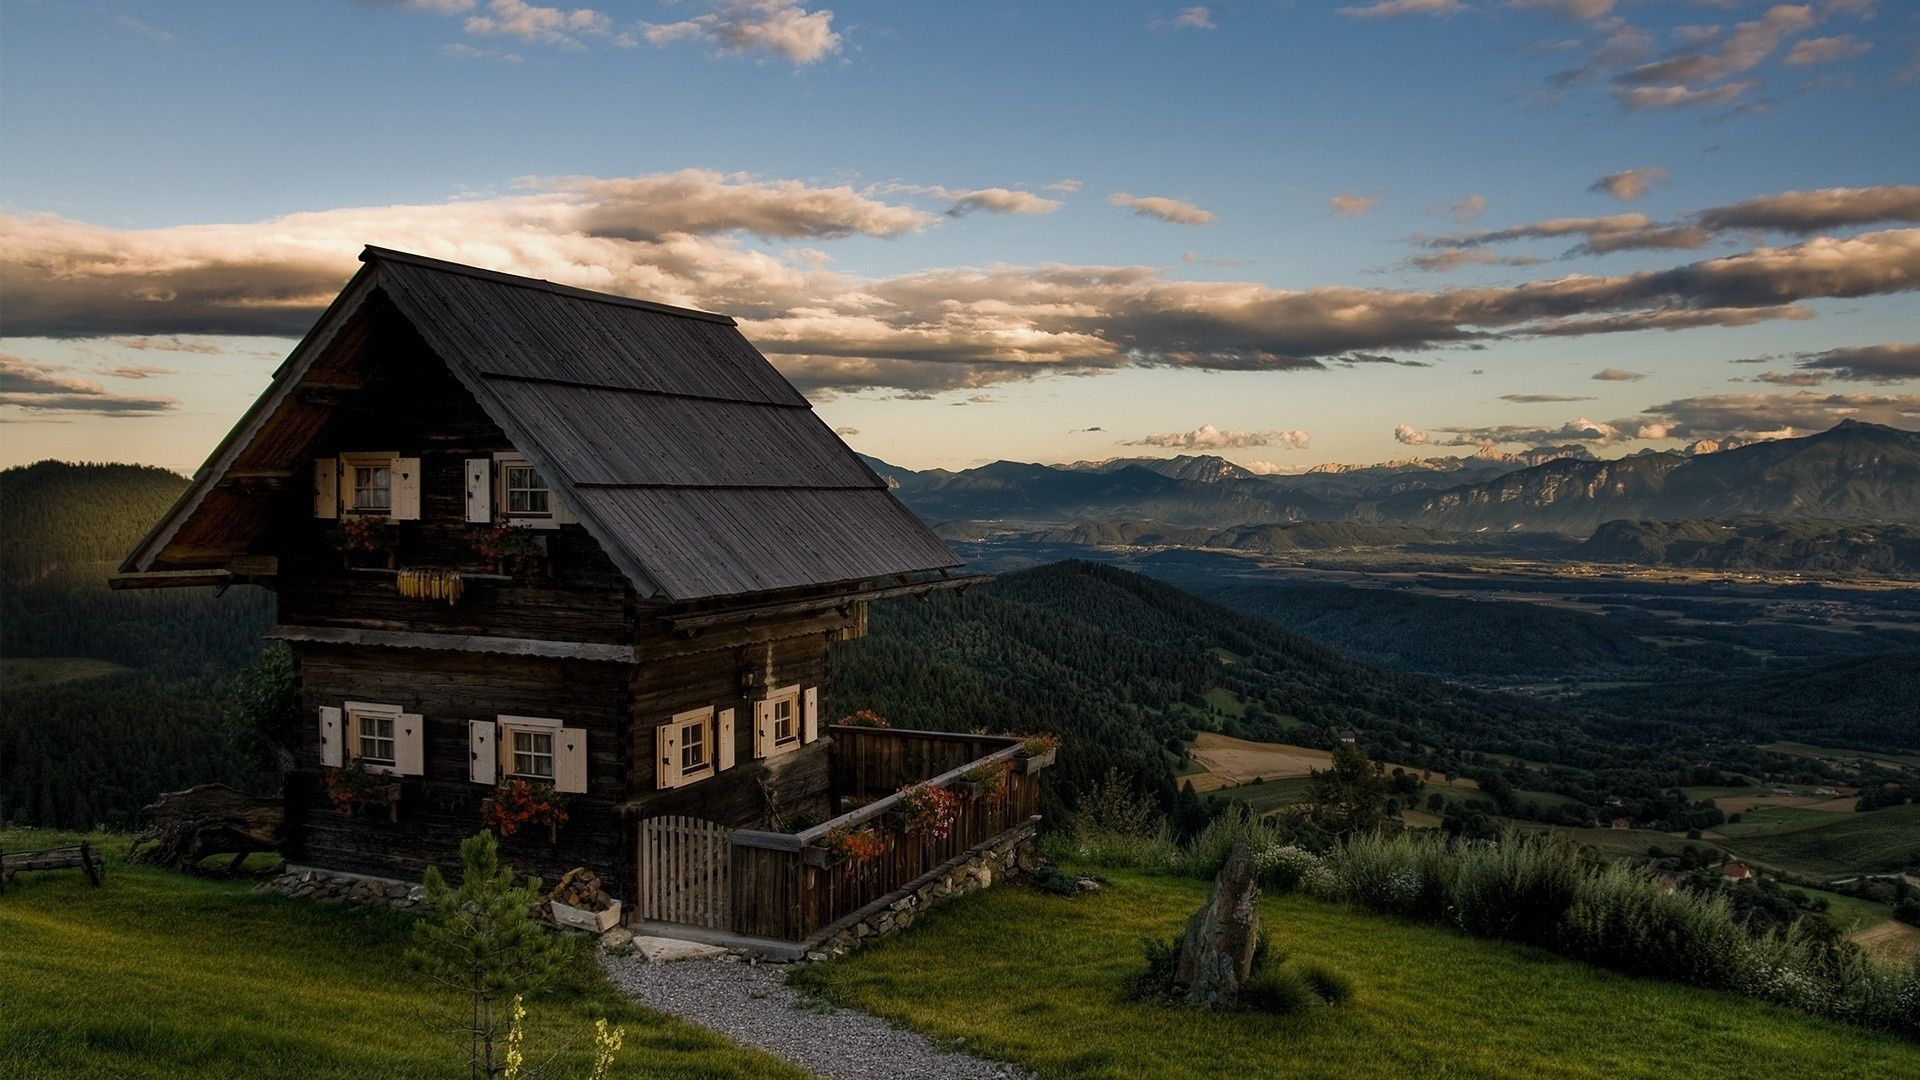 Lonely house on a mountain top Romantic cottage, Fantasy